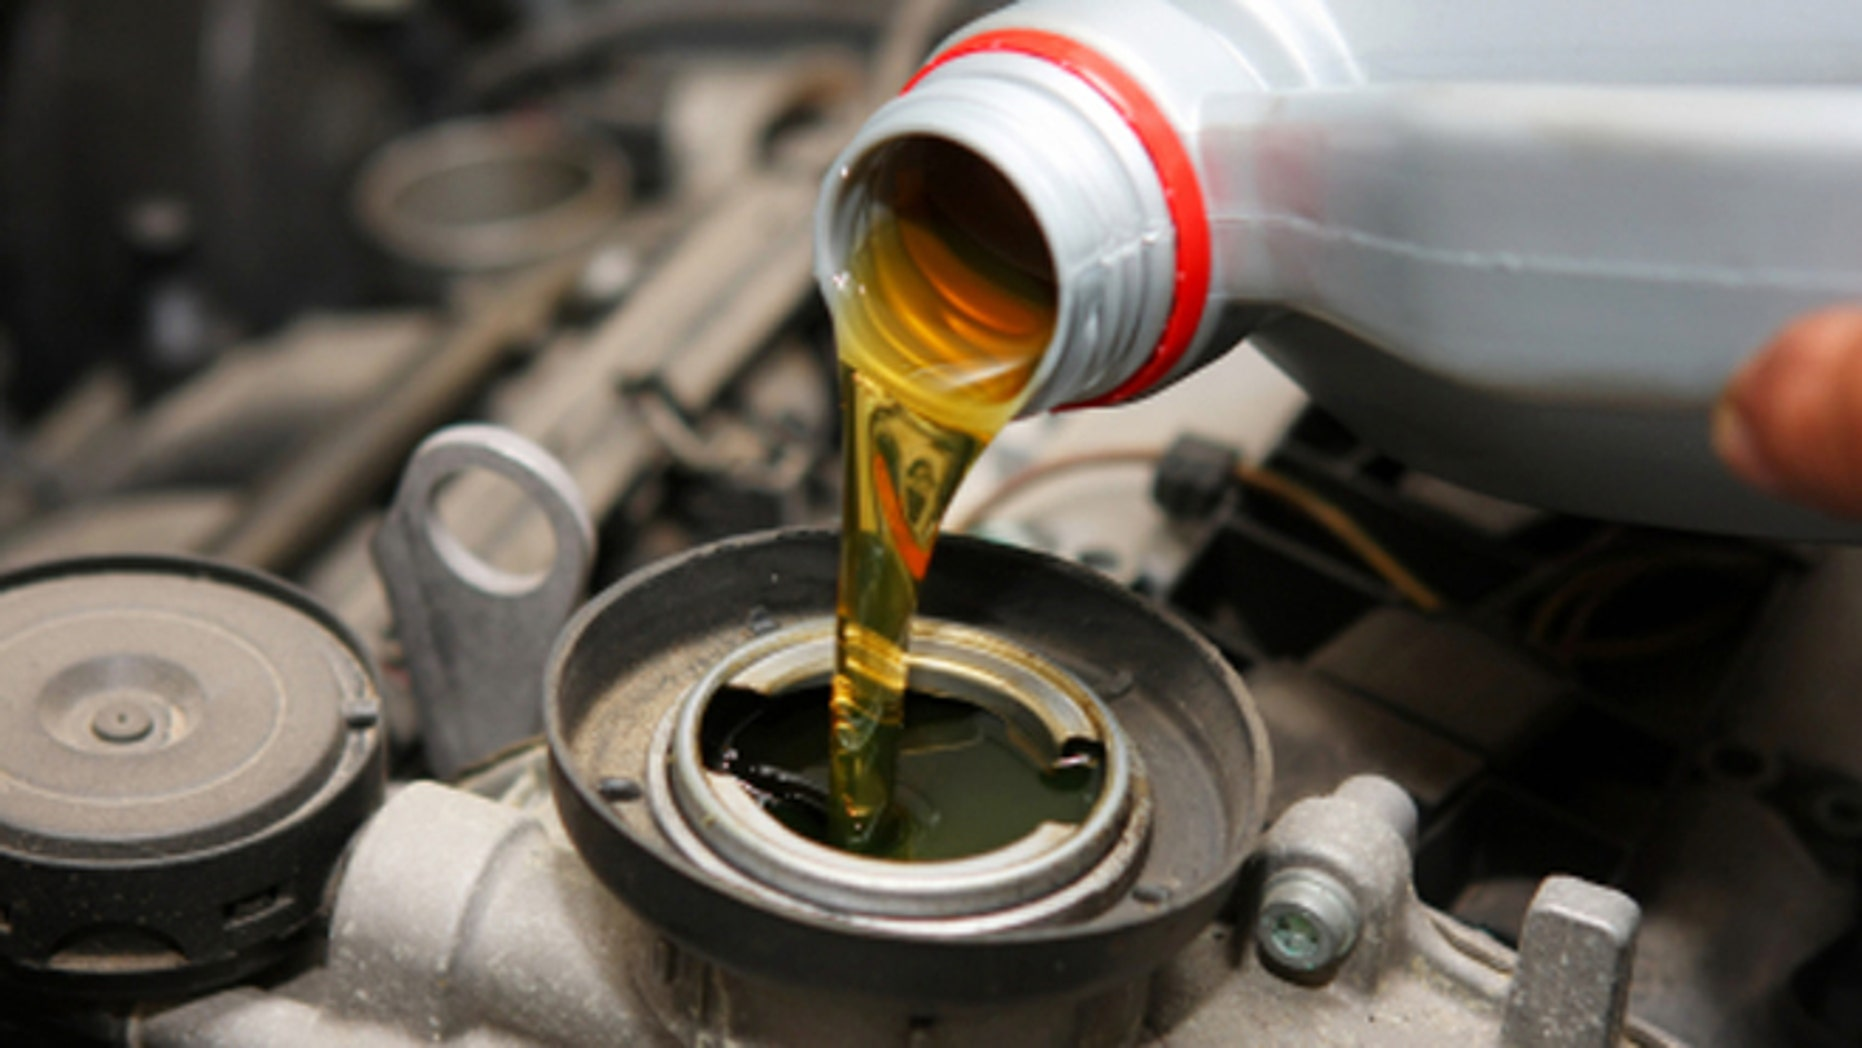 If you don't change your oil regularly, corrosion, heat and abrasion will  create sludge, which will corrupt your engine and cause it to fail  prematurely.